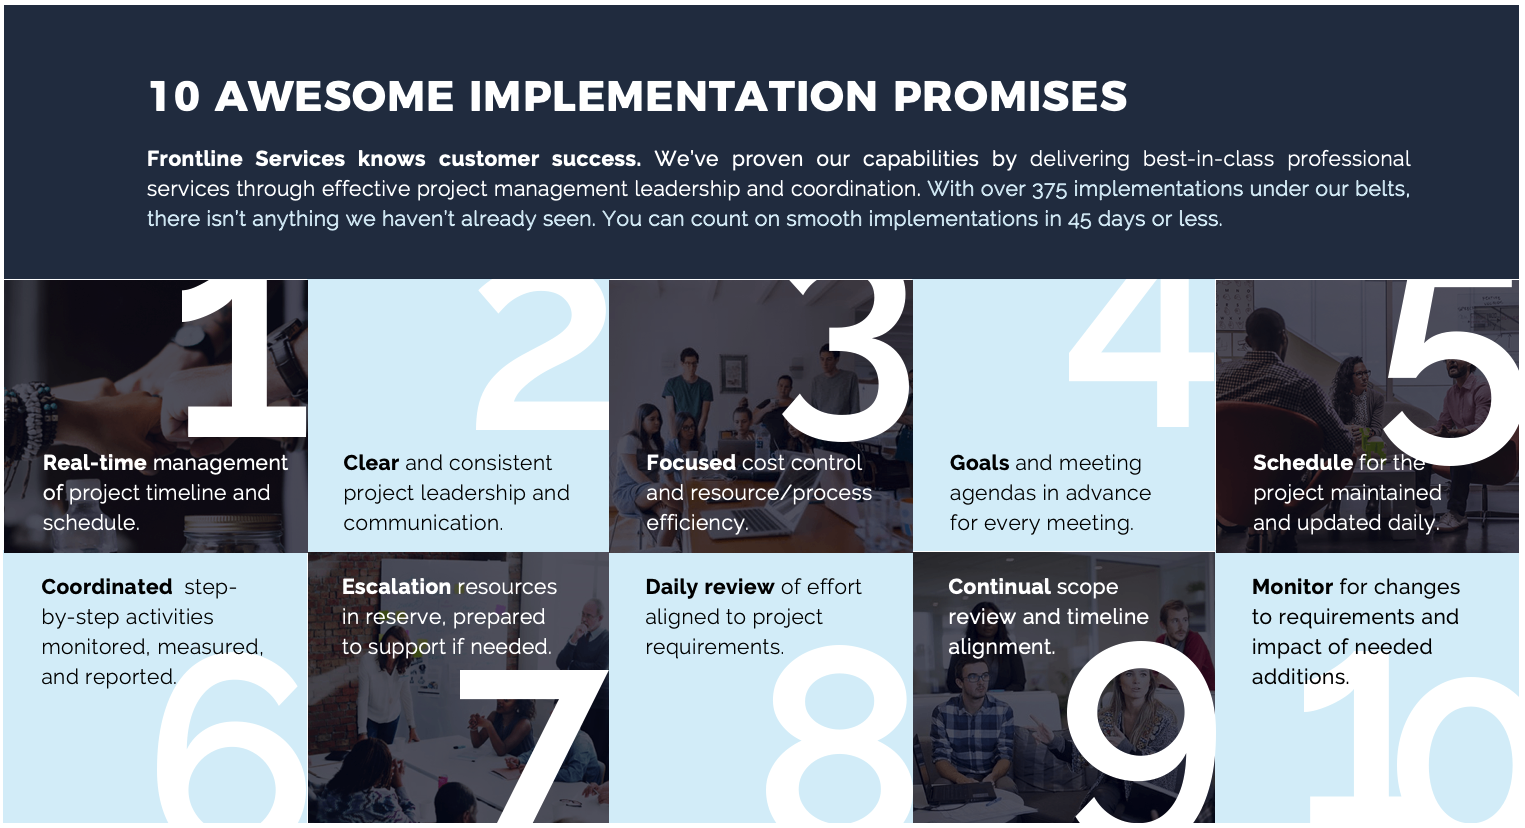 10 awesome implementation promises